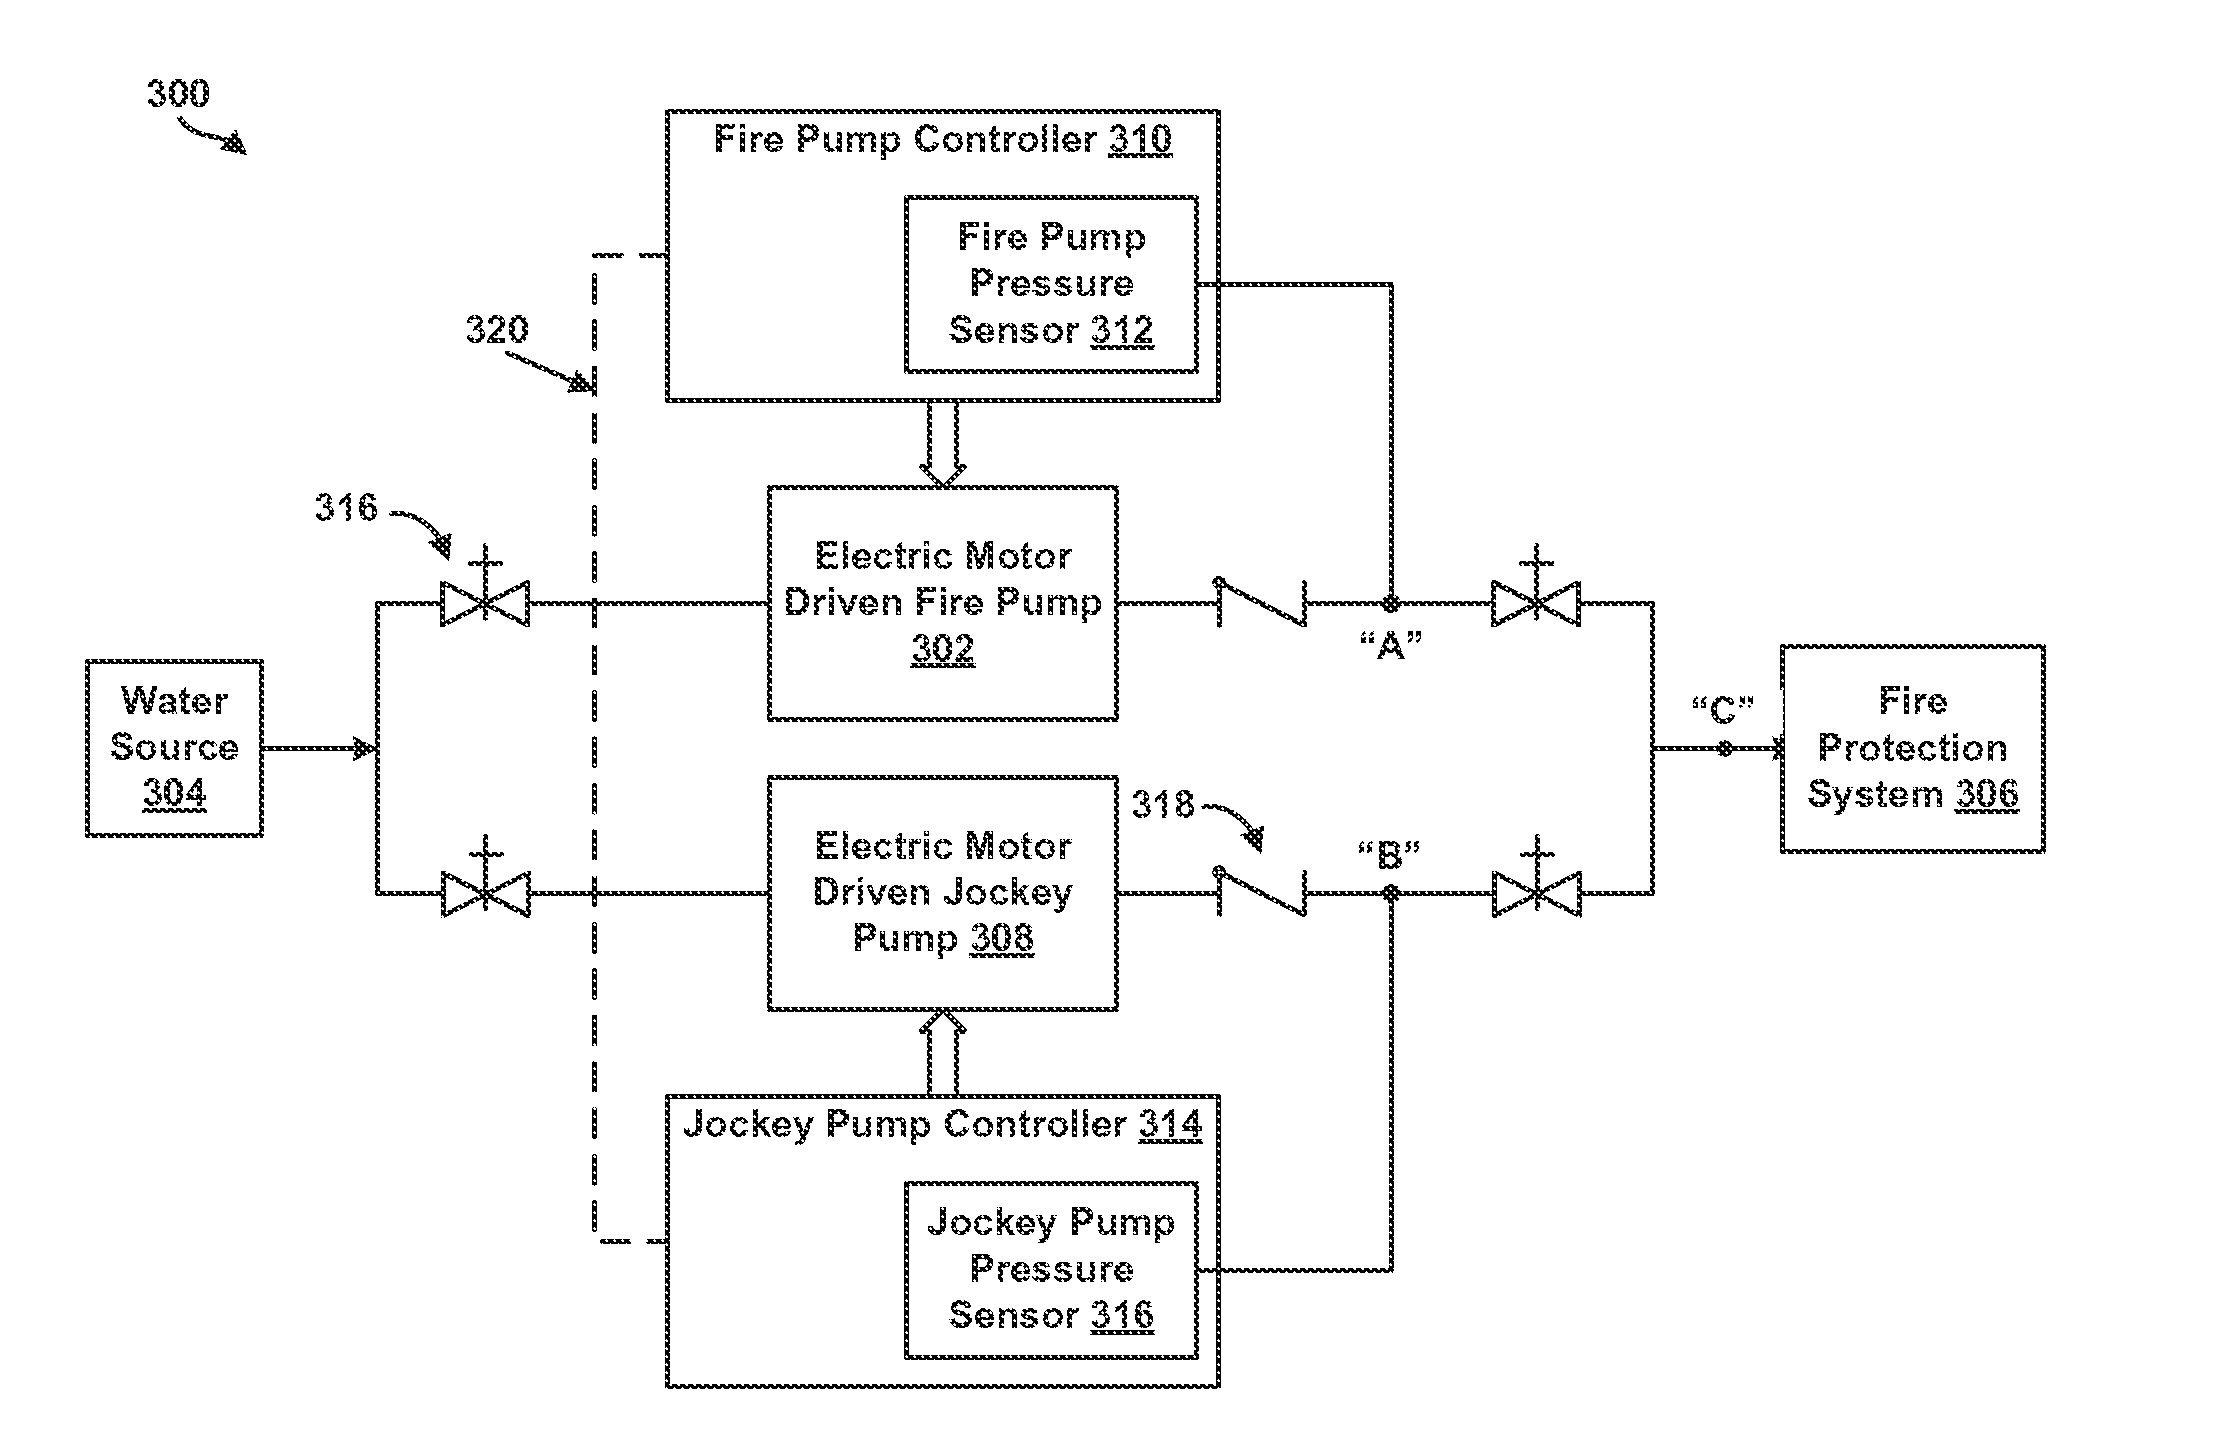 Wiring Diagram Jockey Pump : Patent us  dual redundancy in fire pump